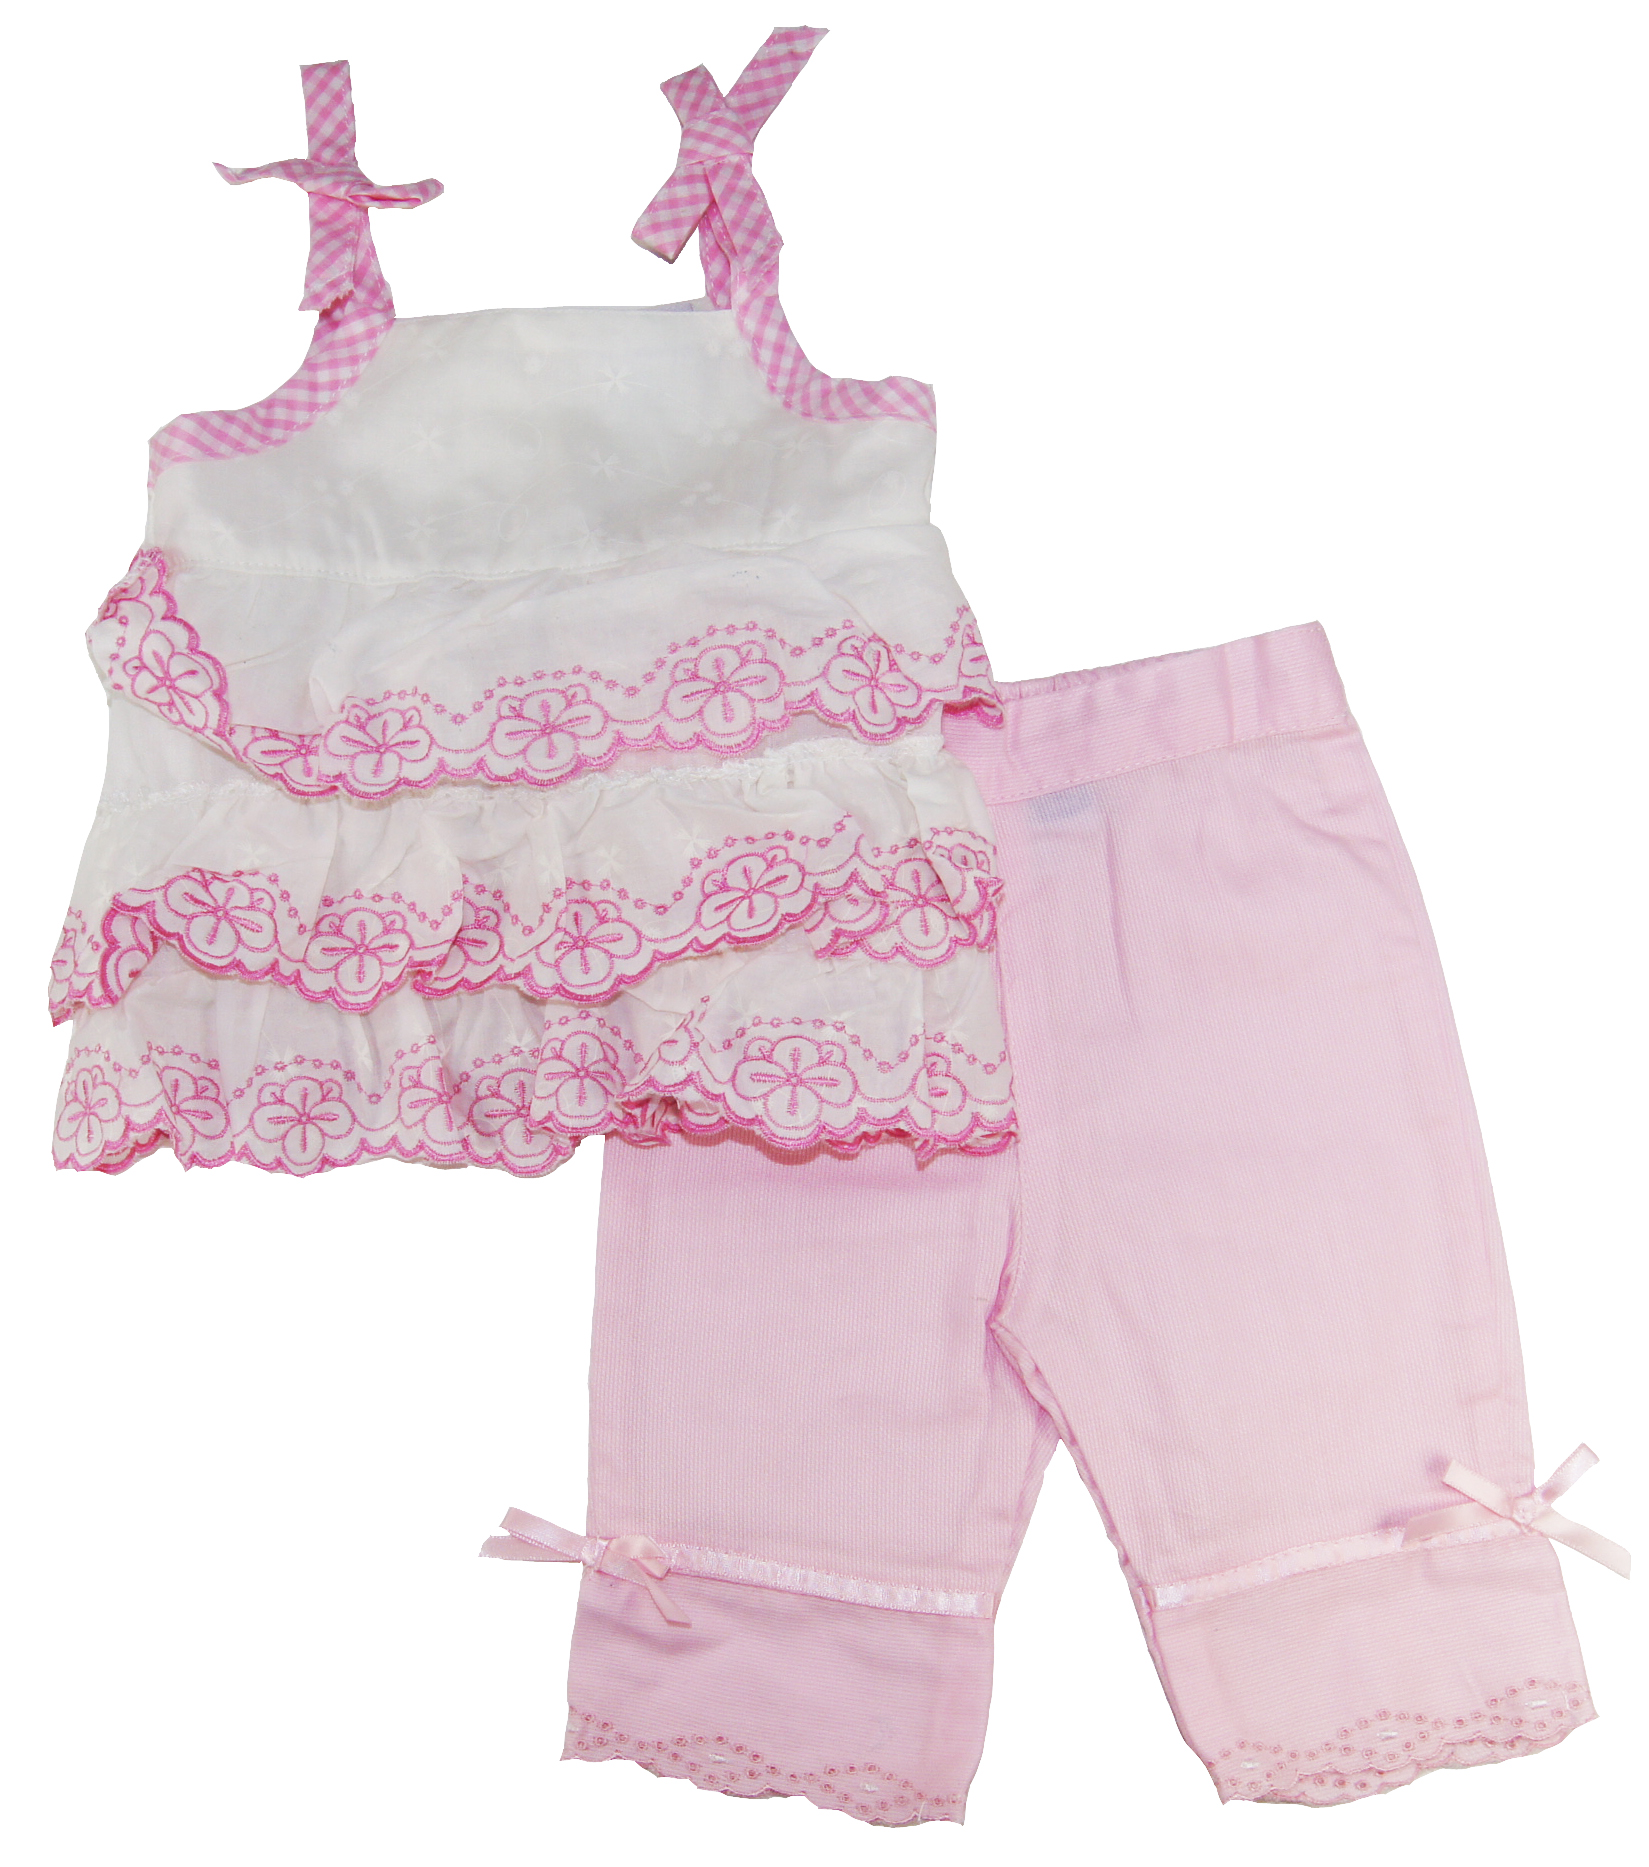 Bon Bebe Newborn Girls Pink/White Dress With Capri Pants 2 Pc 3-6M 6-9M at Sears.com